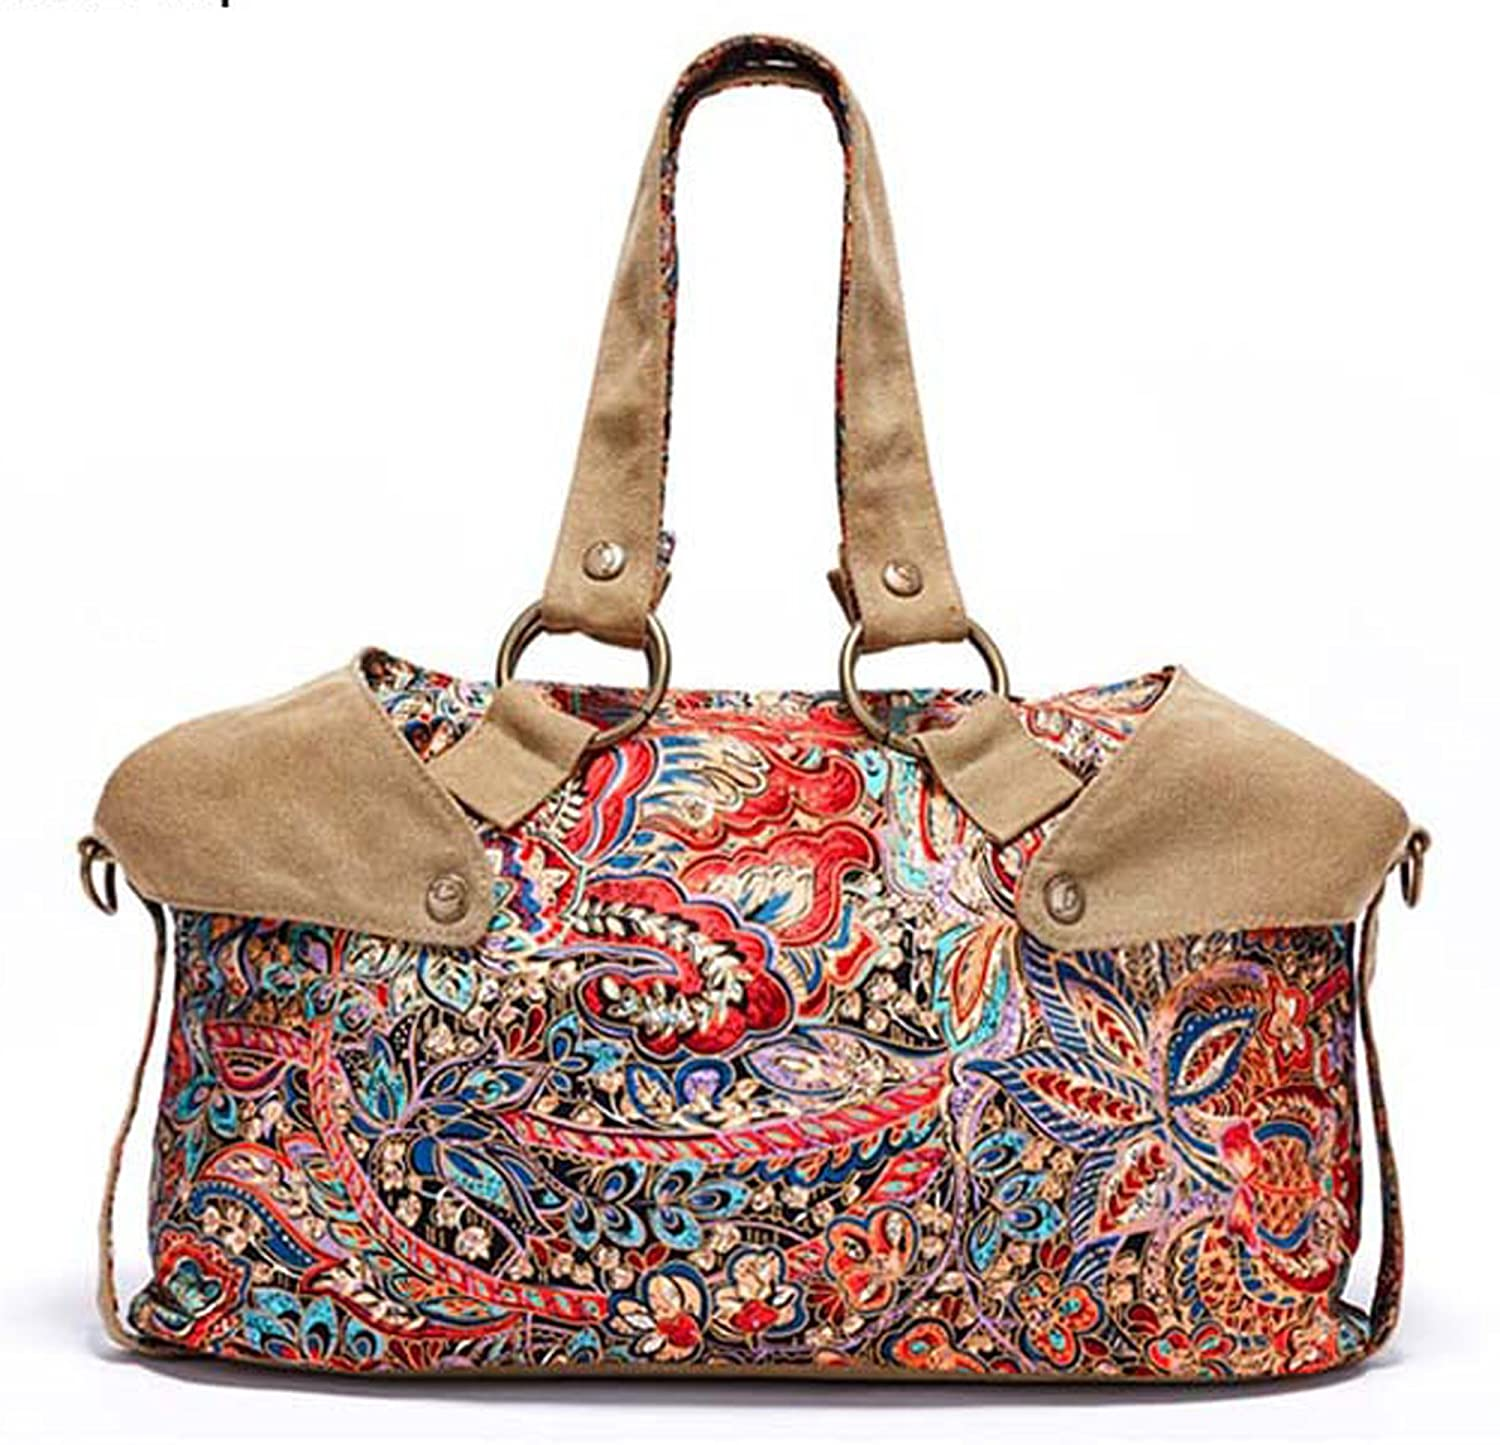 AINISI Womens New Fashion Printing Canvas Handbag Top Handle Bags Shoulder Bags